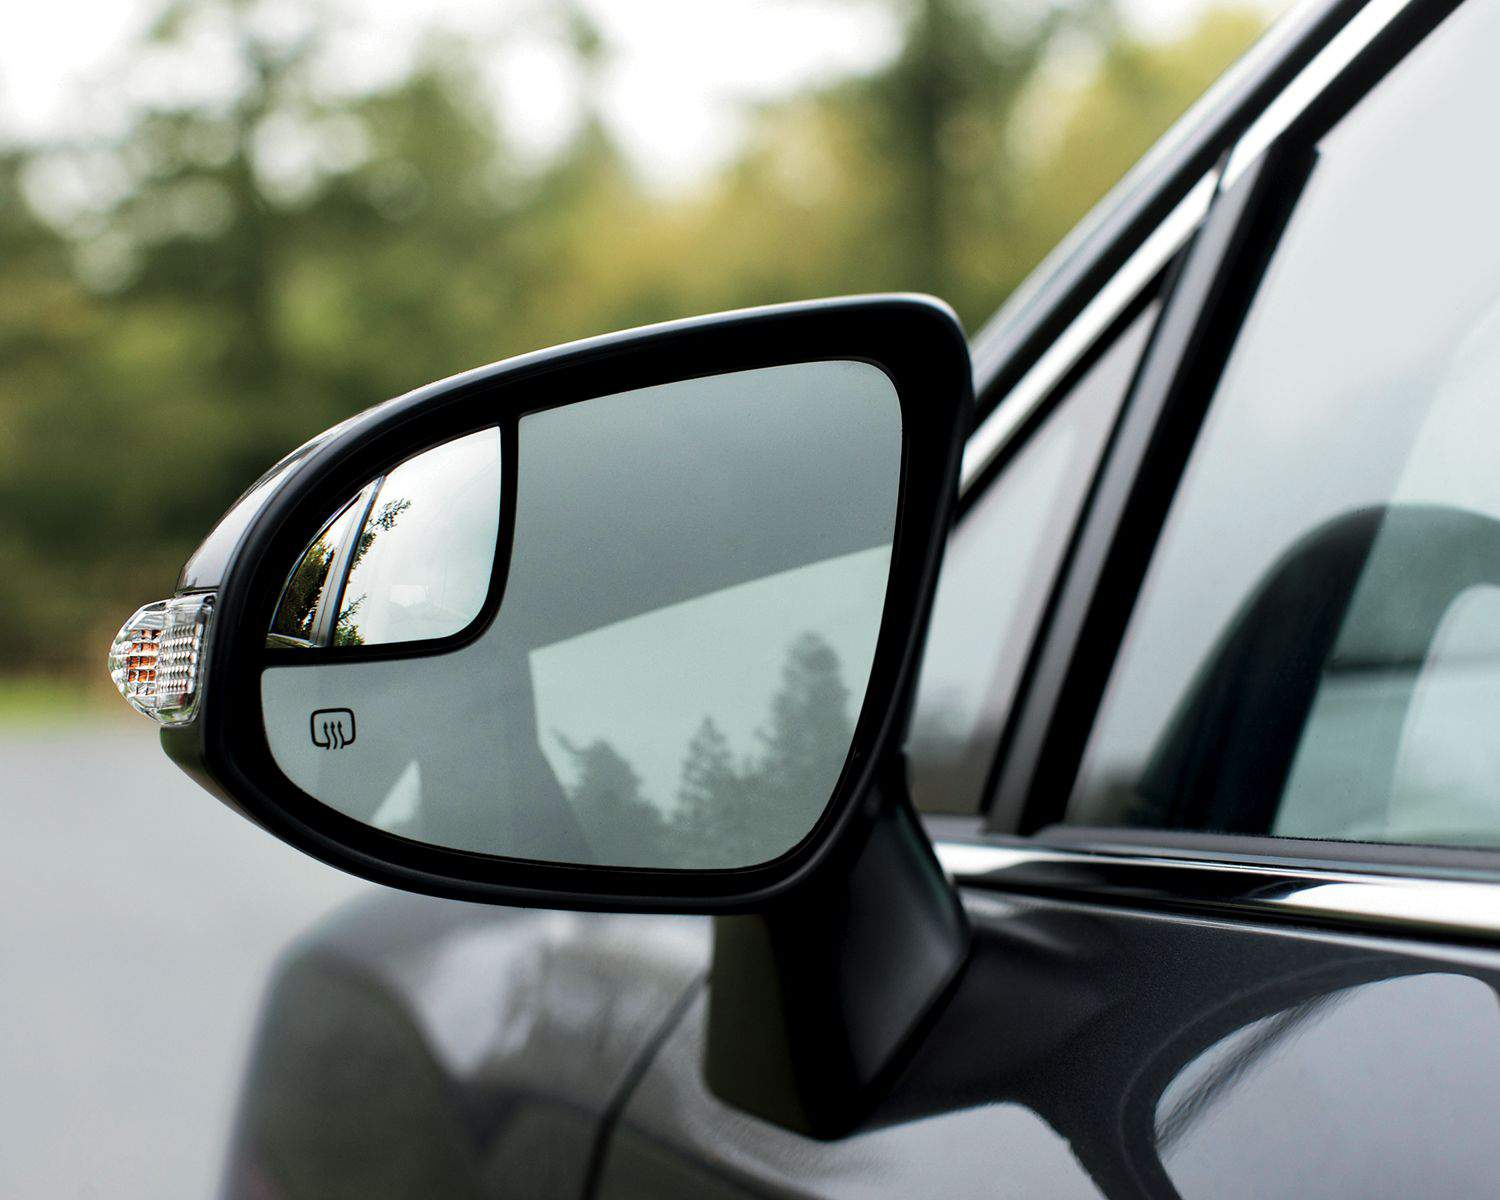 Venza has Power Heated Exterior Mirrors with Integrated Turn Signals, Blindspot Mirror & Puddle Lamps